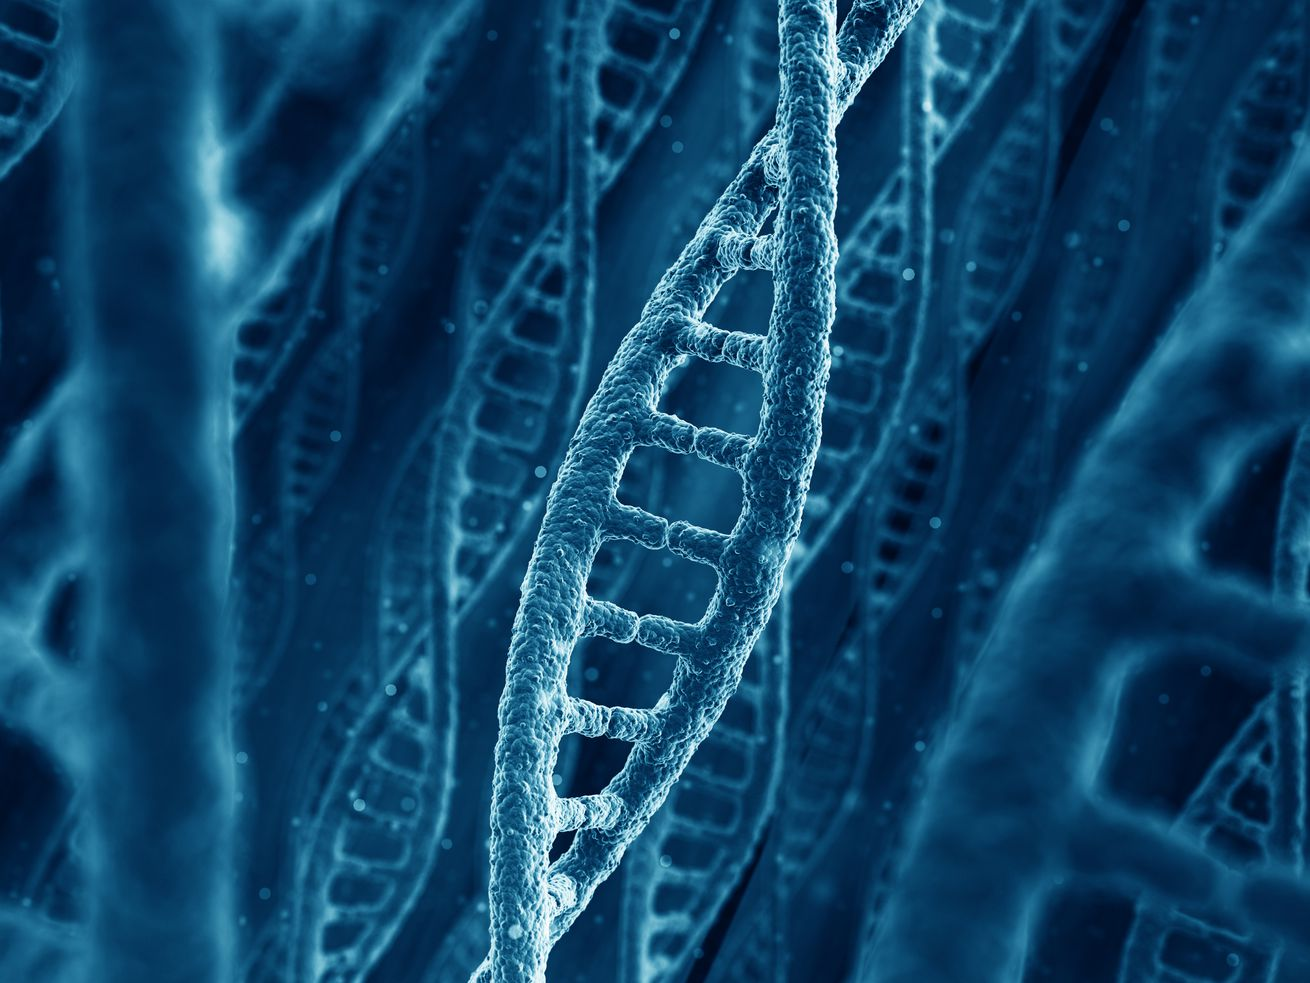 A DNA helix.